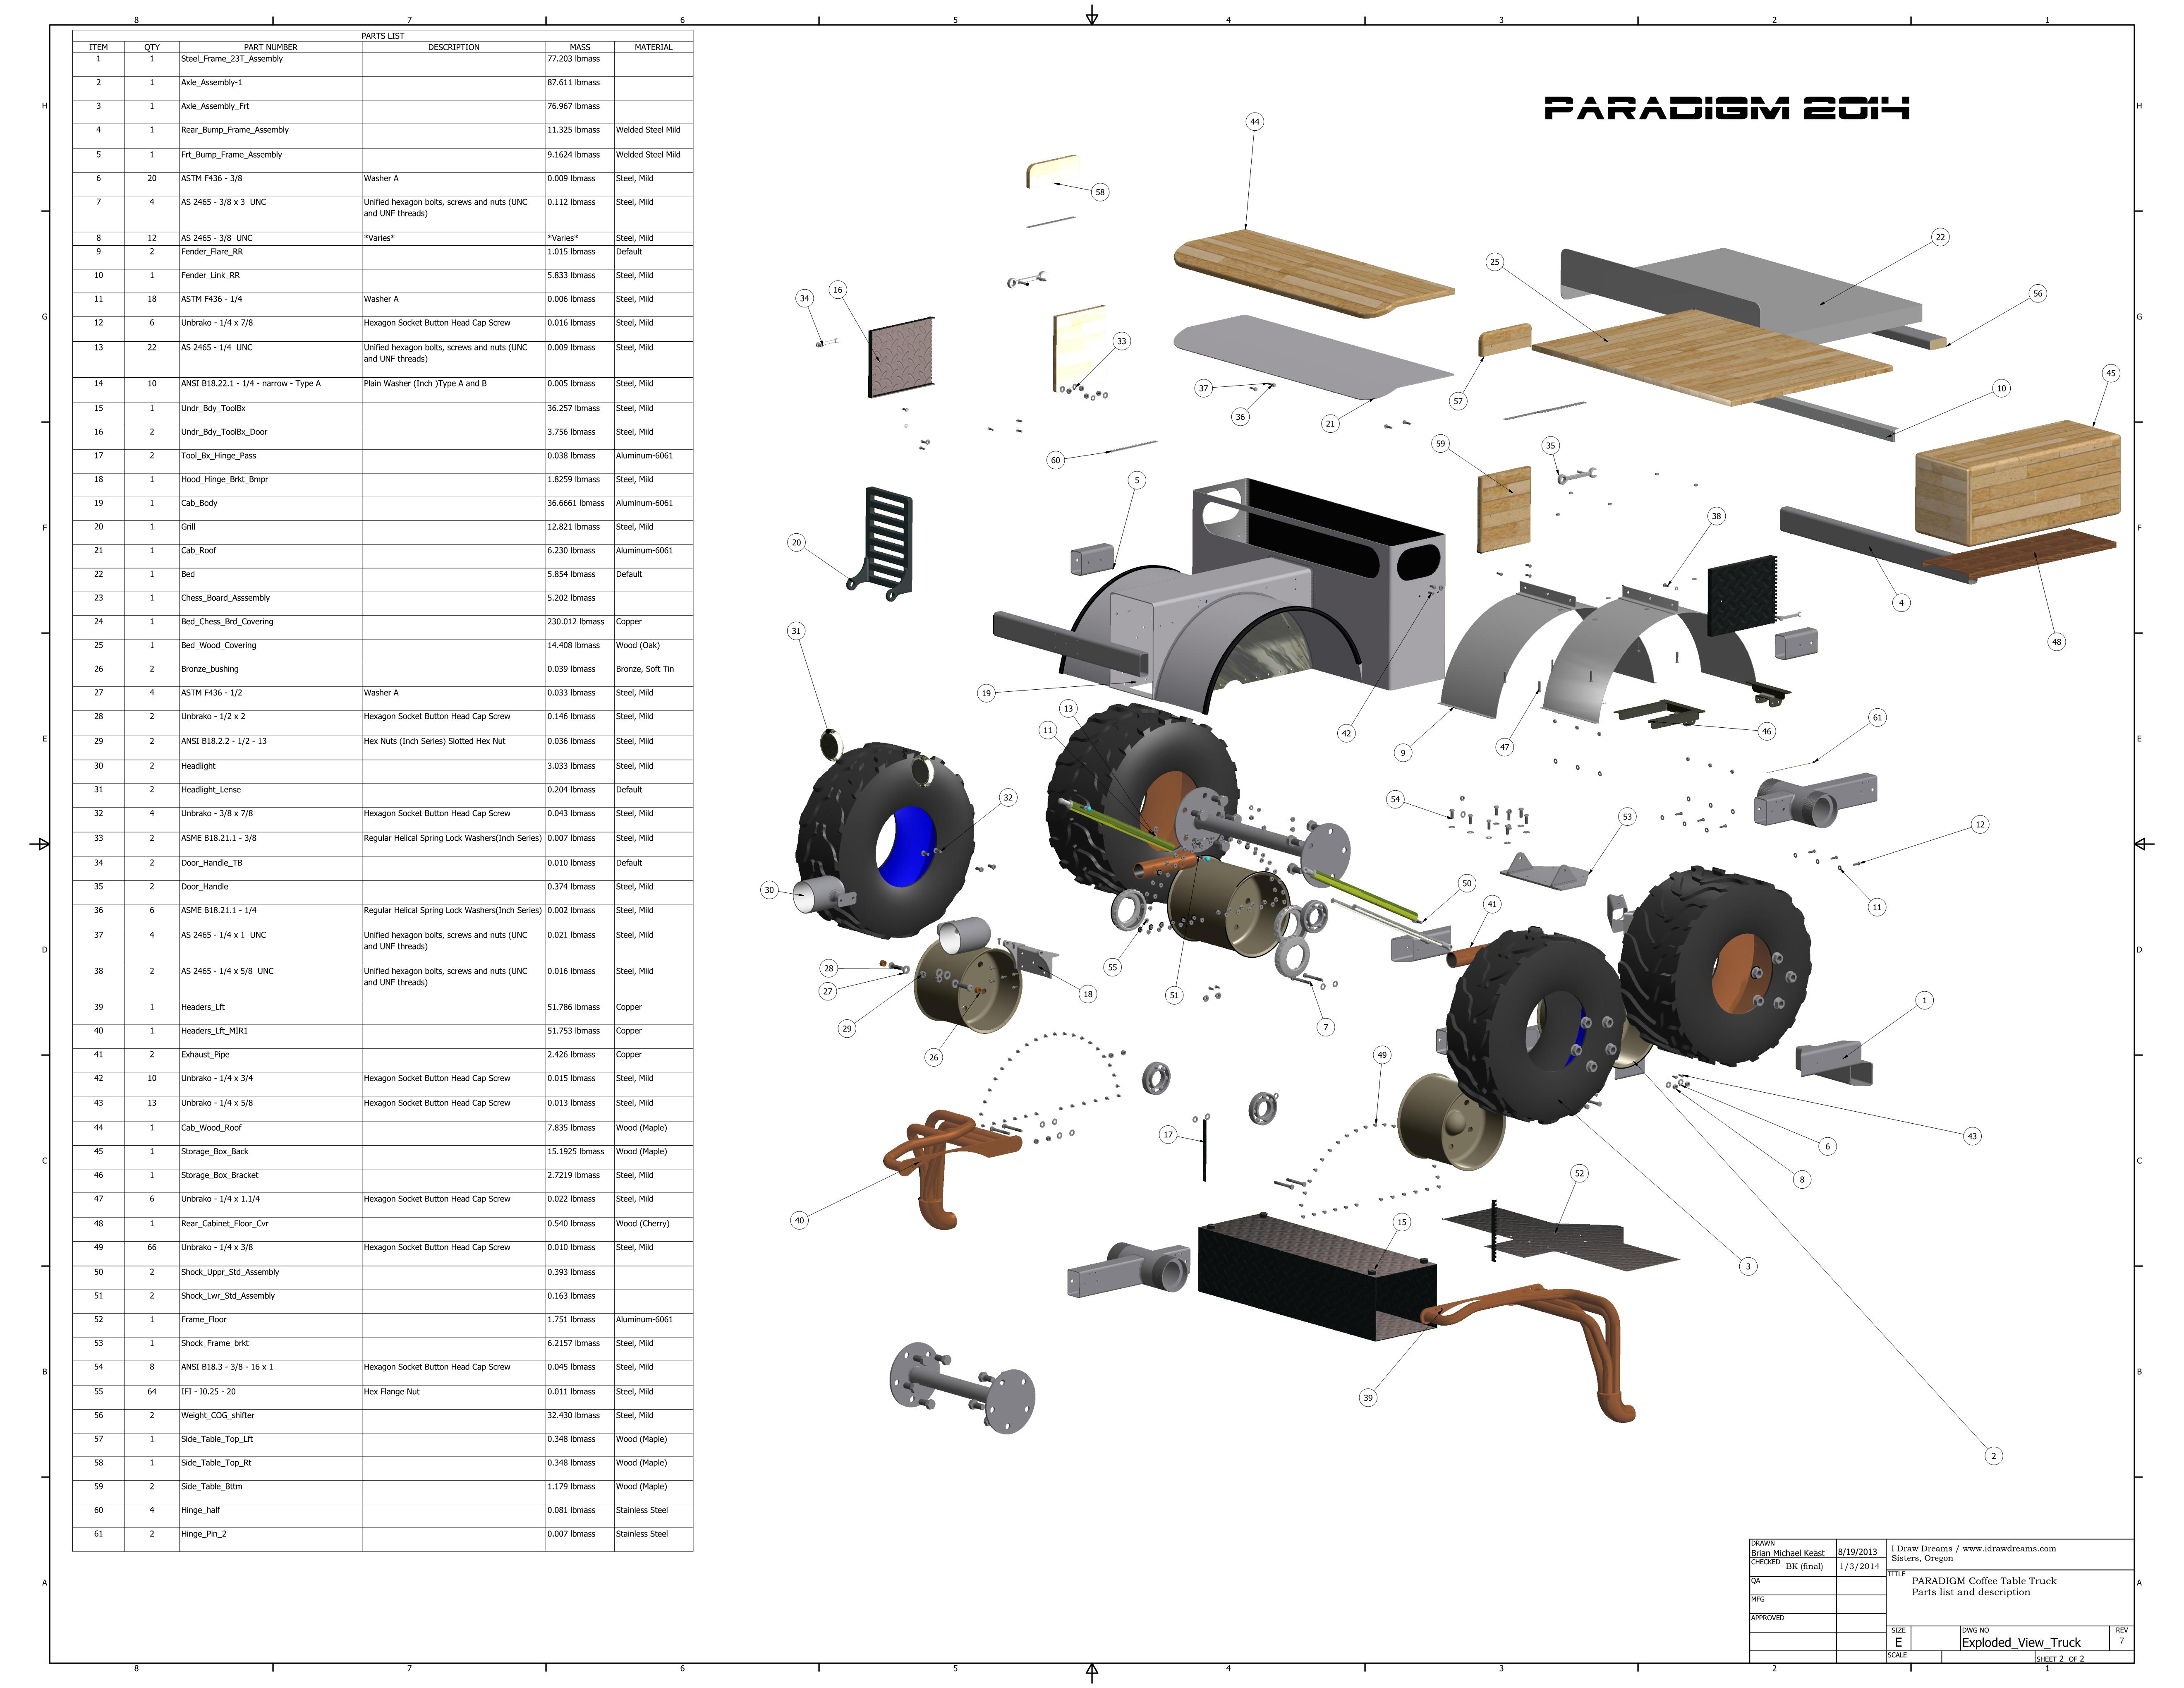 exploded view of 3D model